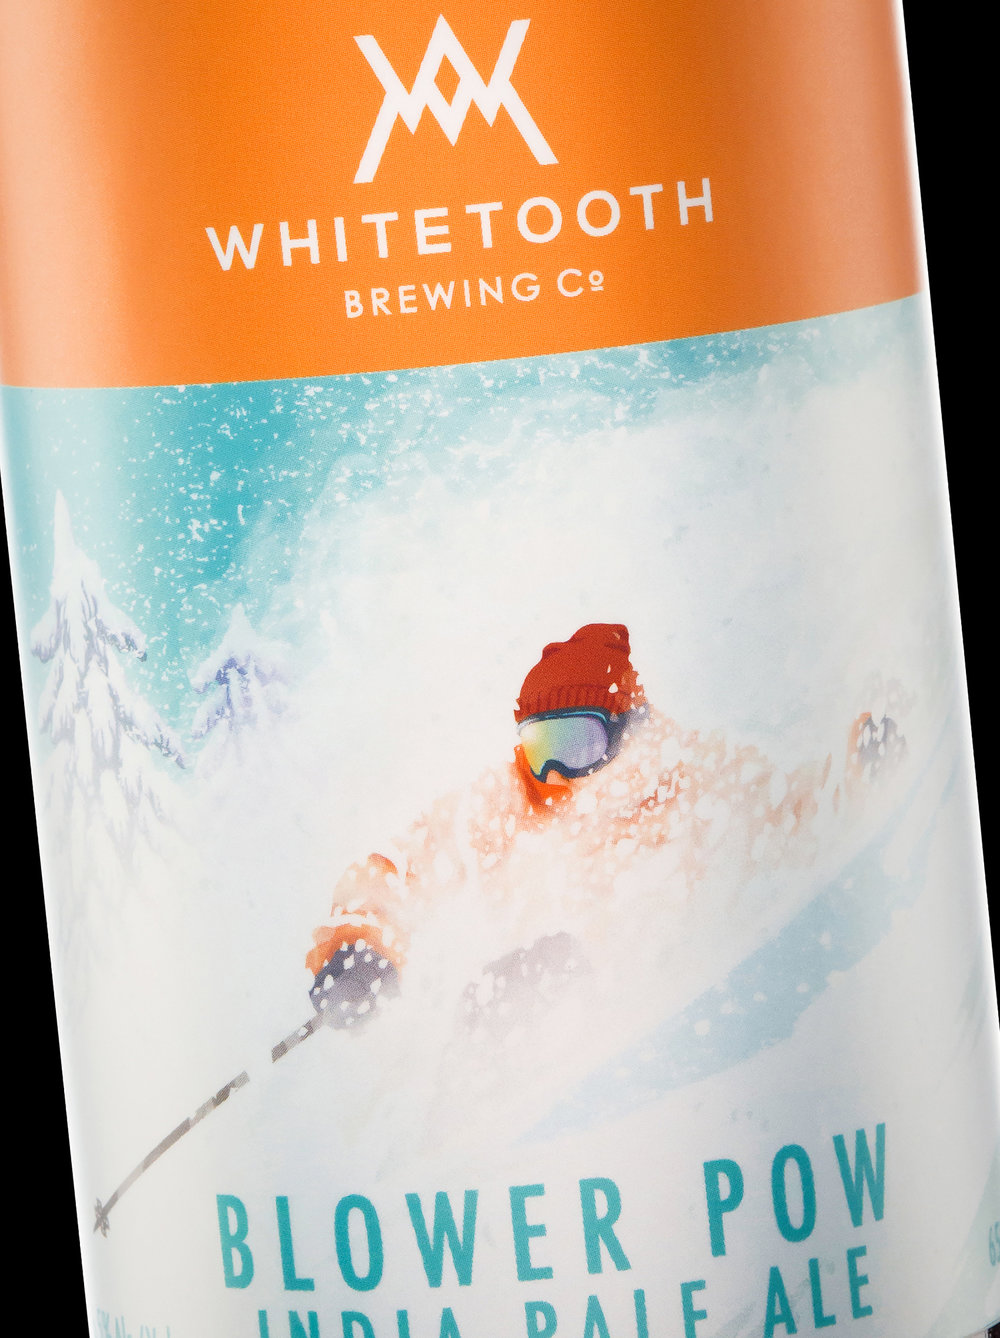 Branding and Packaging Design for Whitetooth Brewing Company